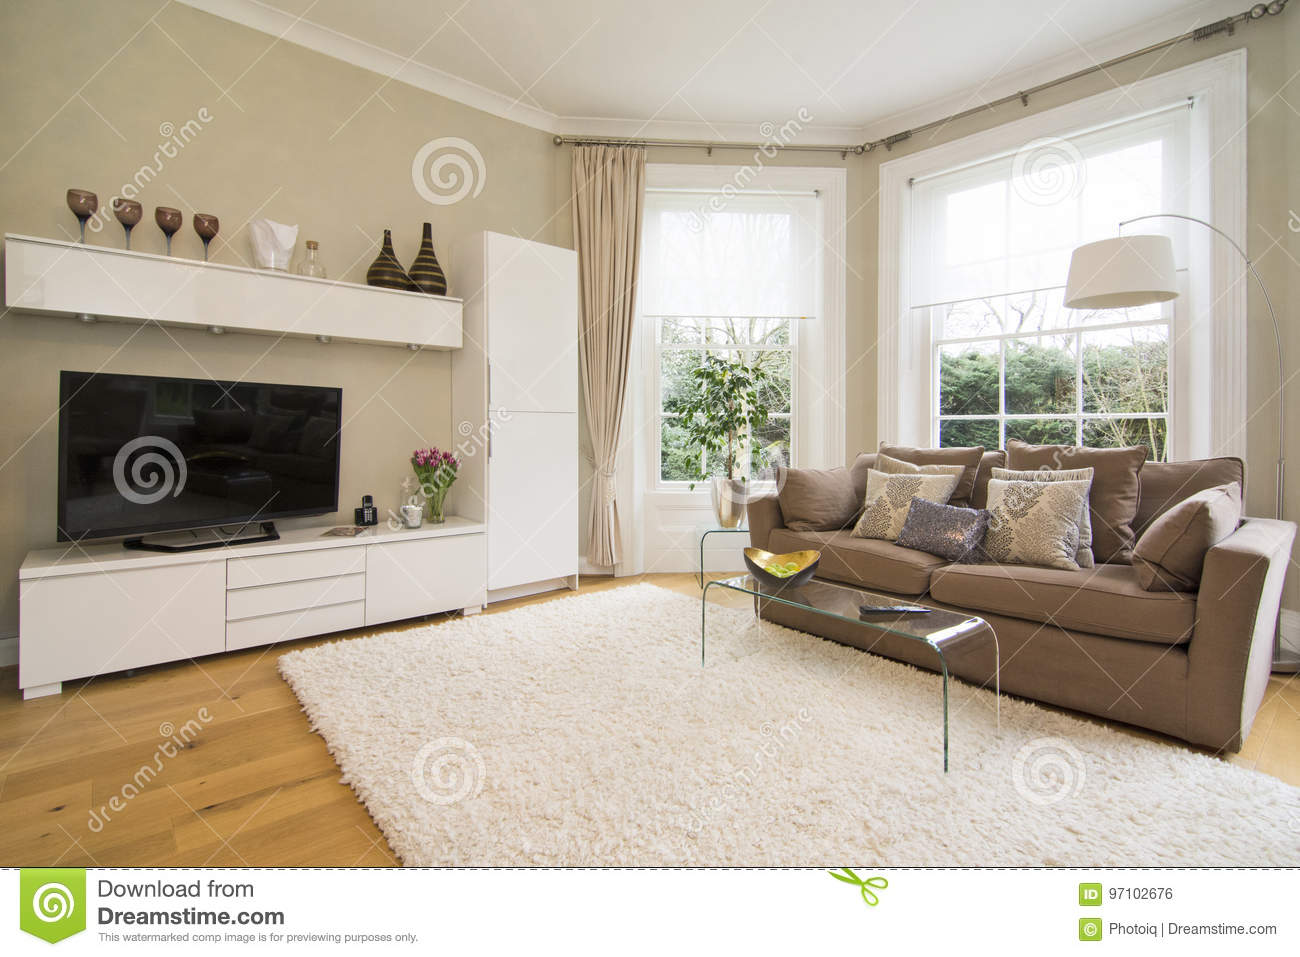 Classic Living Room With Classy Two Seater Sofa Bed, Plasma Tv A ...